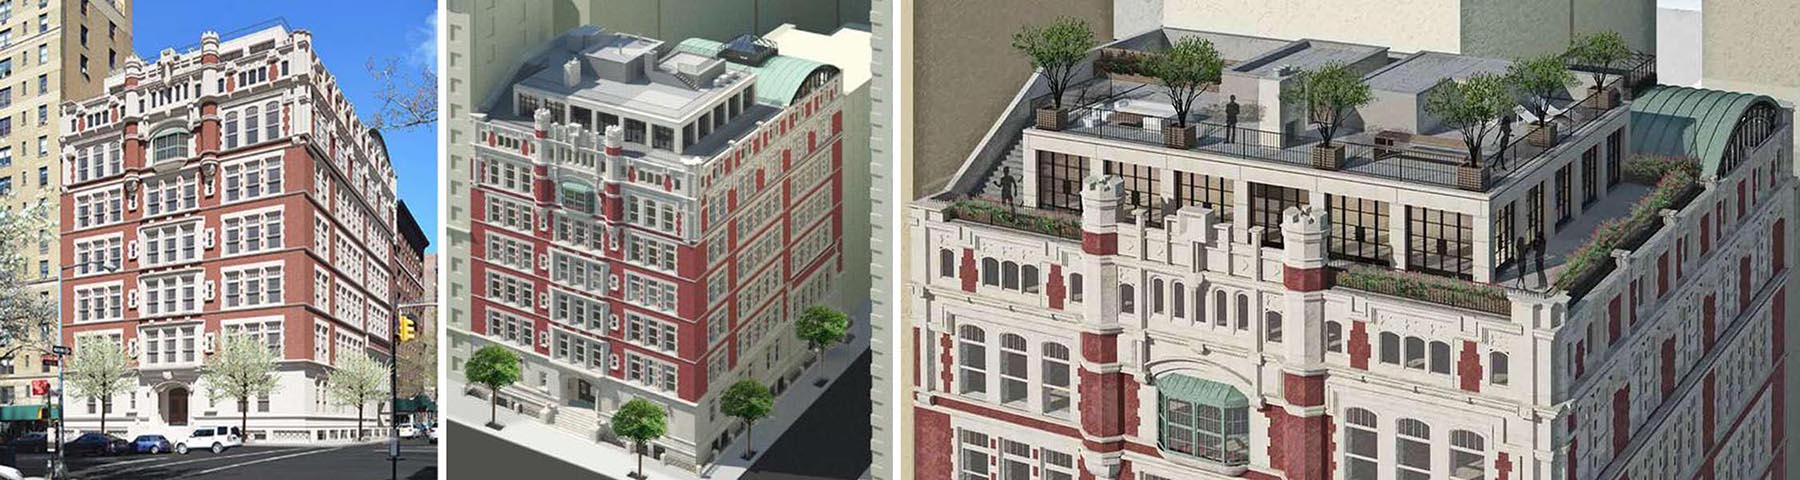 Proper way to add a rooftop addition by setting it back from all visible facades